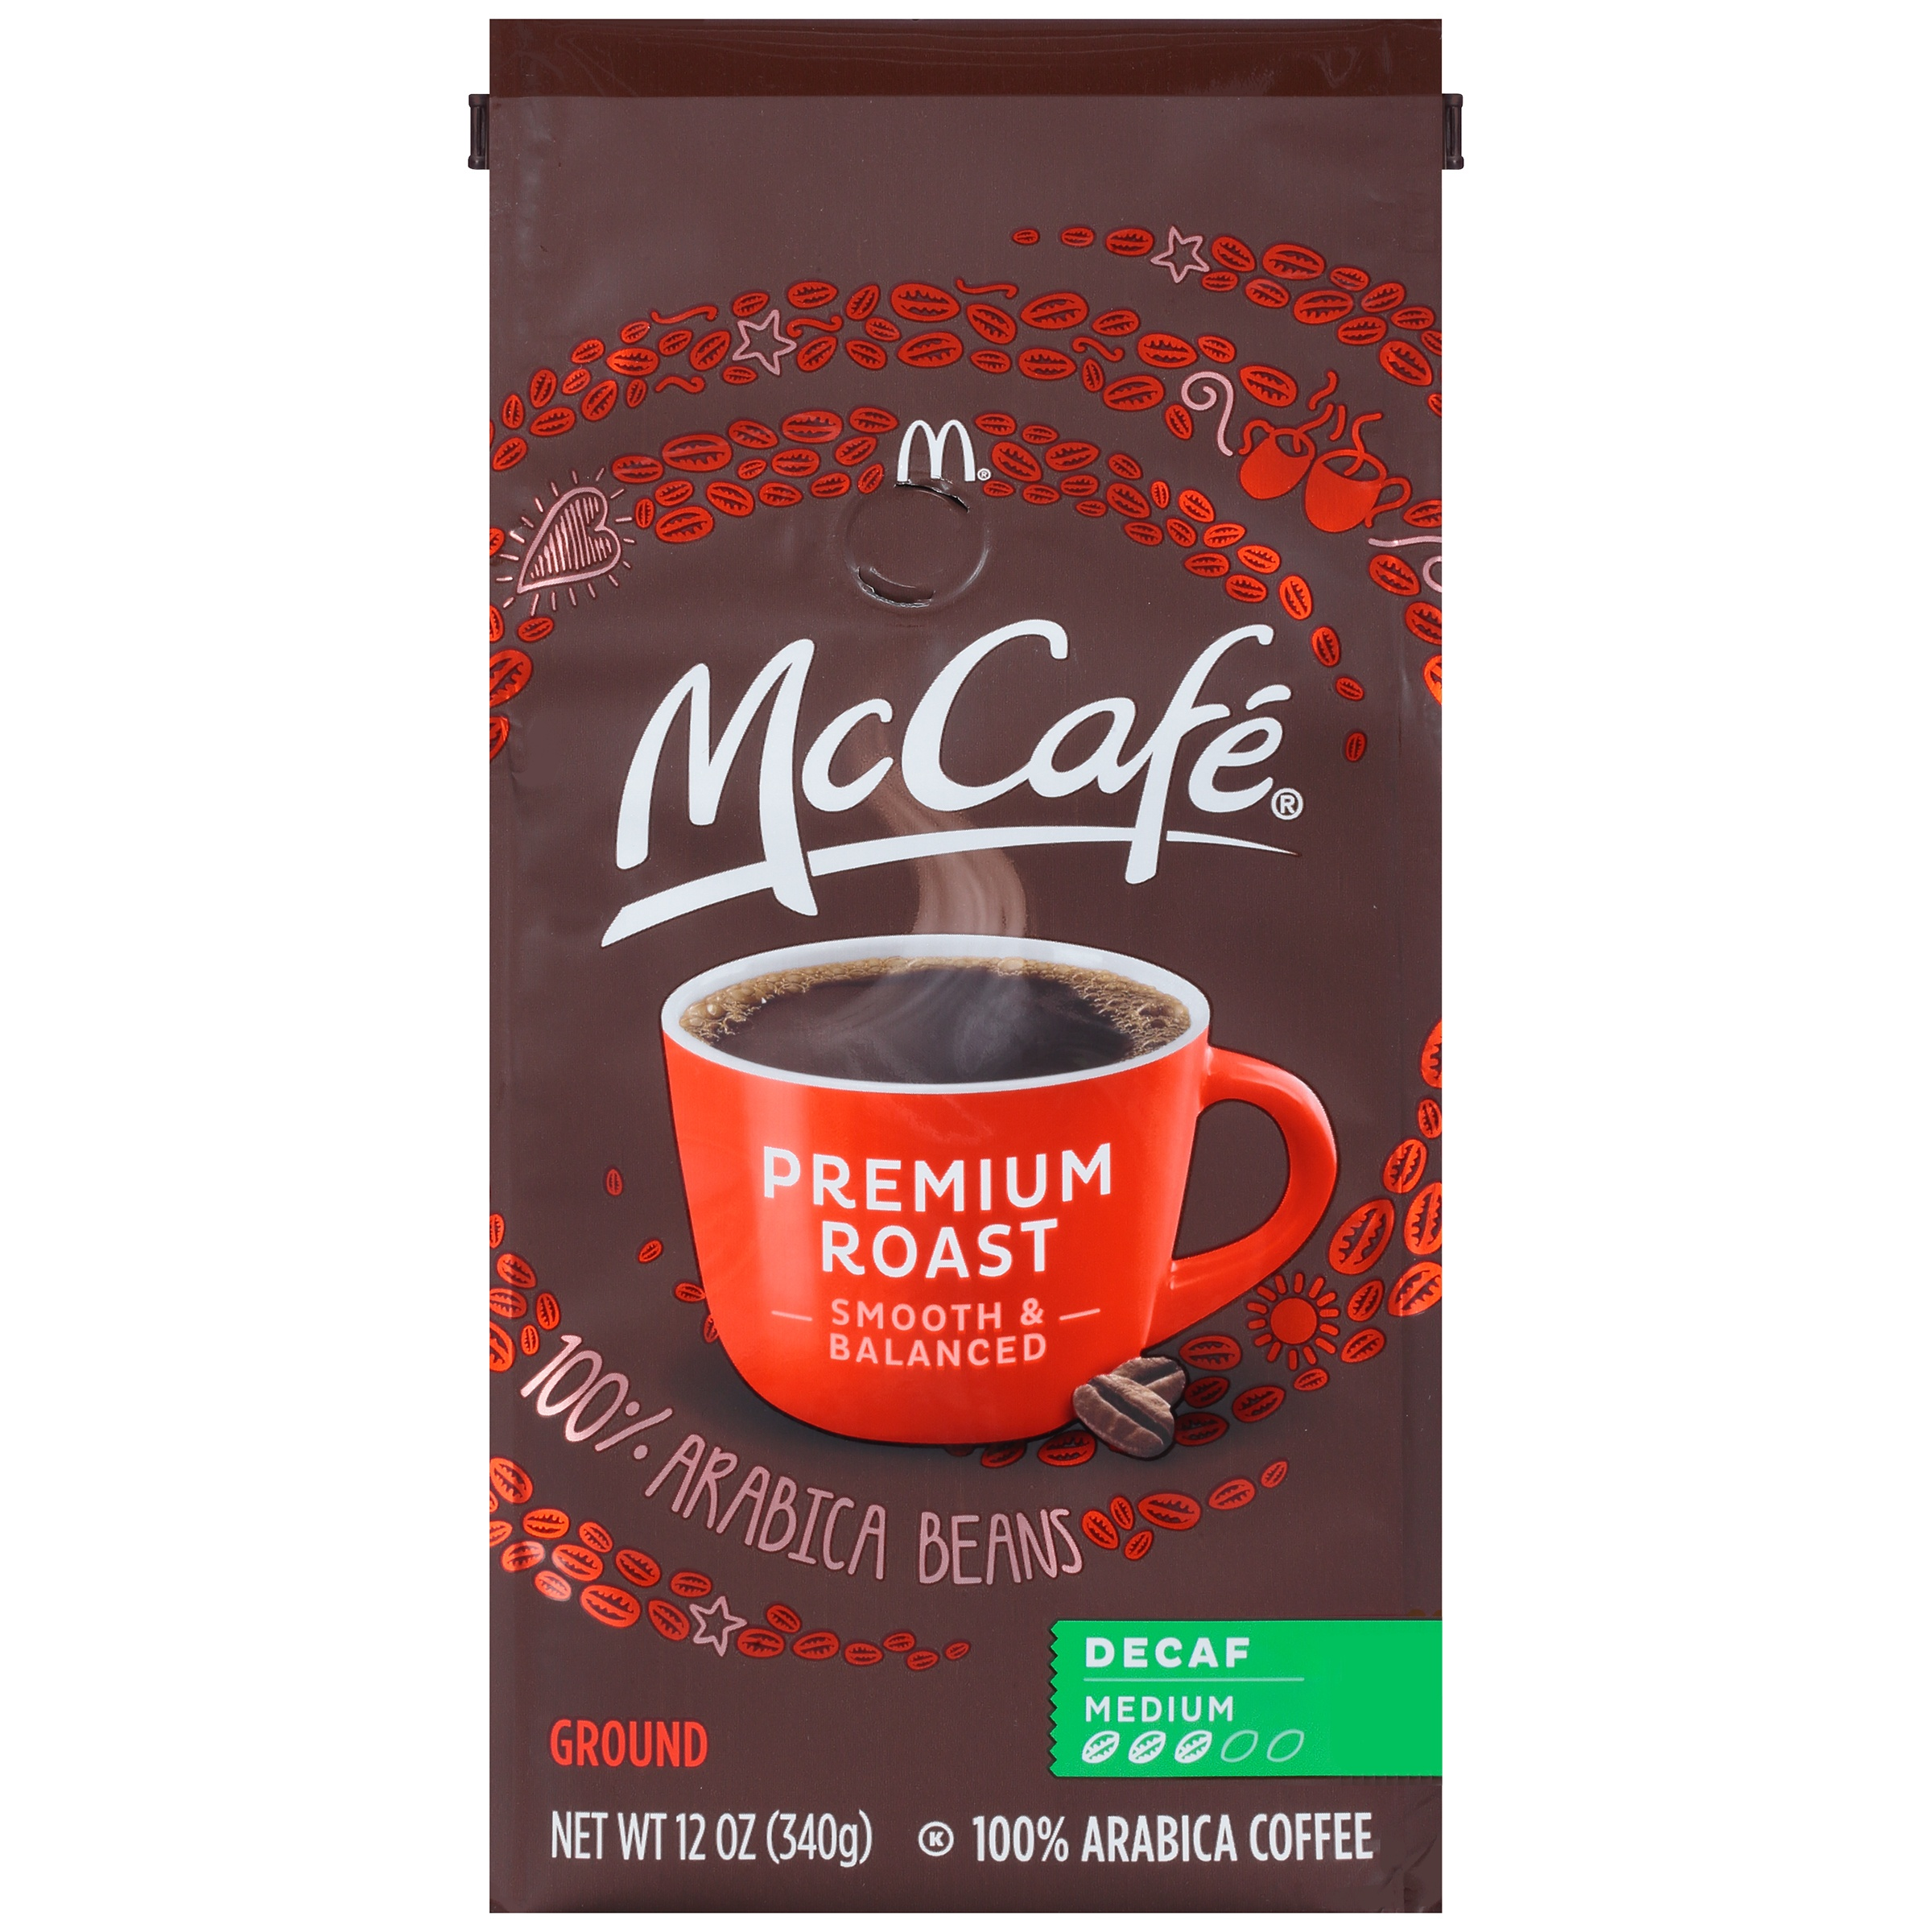 McCafe Decaf Premium Roast Ground Coffee 12 oz. Bag